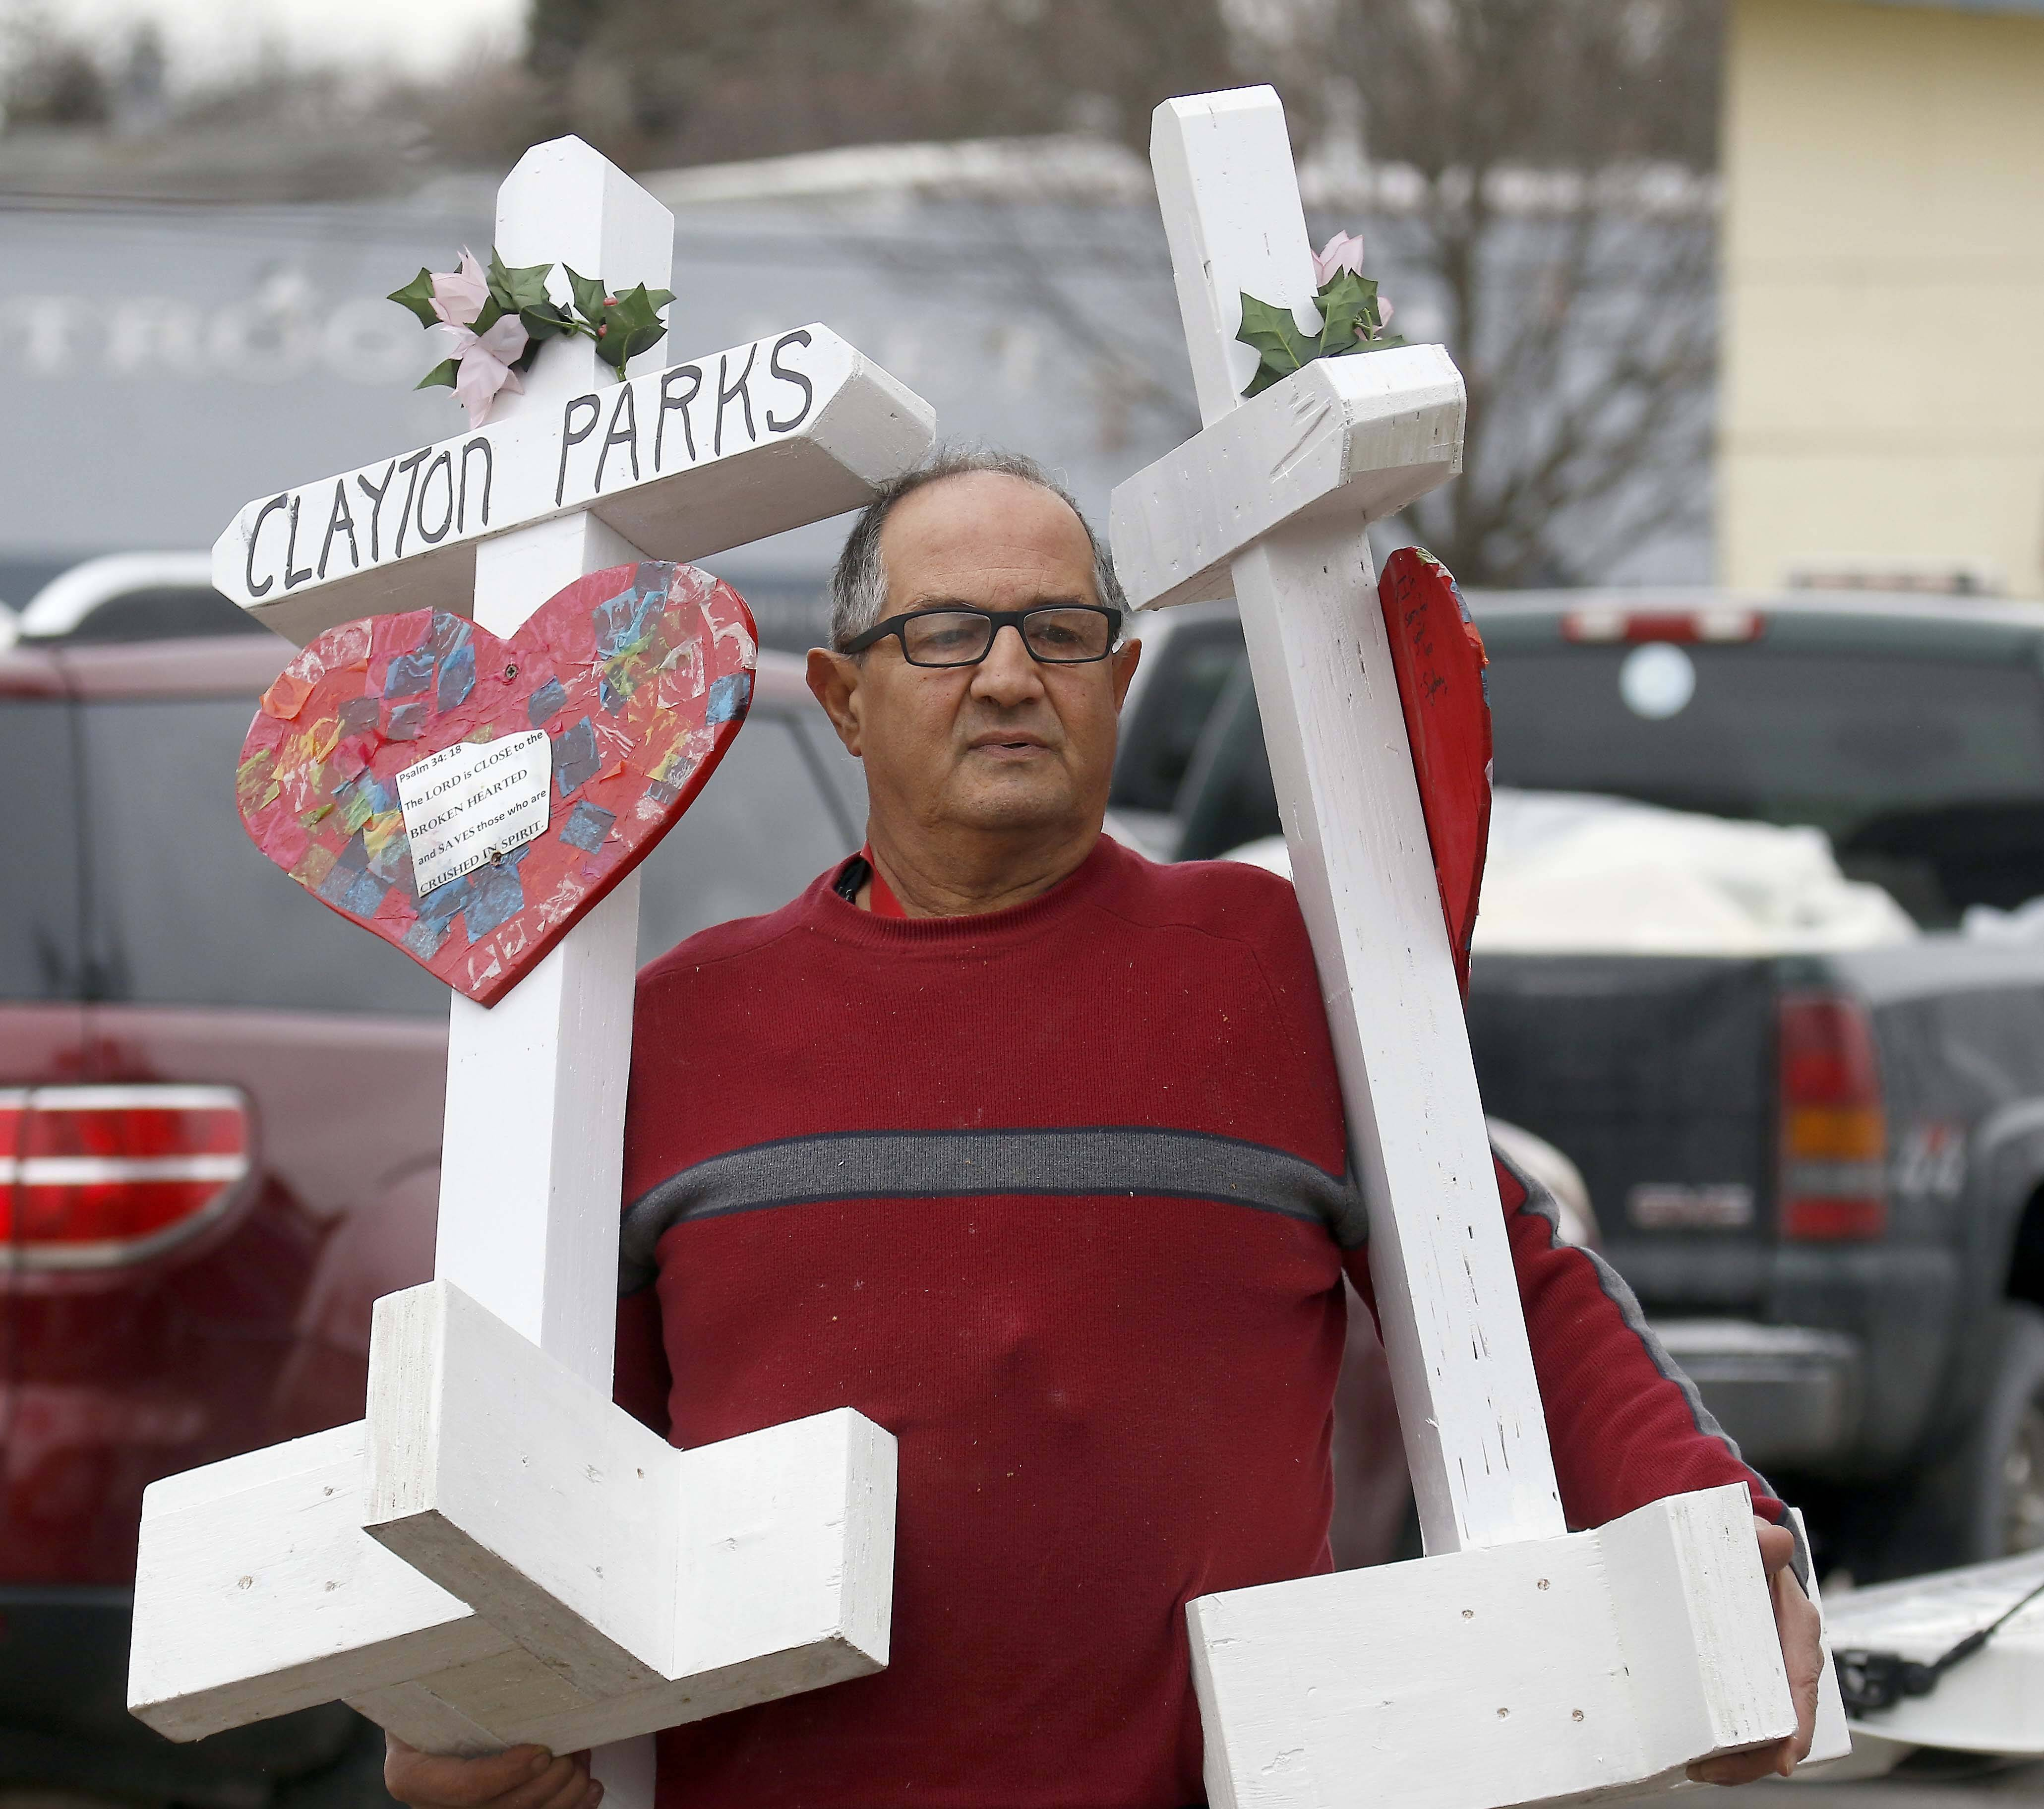 Greg Zanis of Aurora said making crosses for the five victims of Friday's deadly shooting in his hometown of Aurora was emotionally difficult. Five people were killed by a gunman who was in the process of being fired from his job at the Henry Pratt manufacturing warehouse.